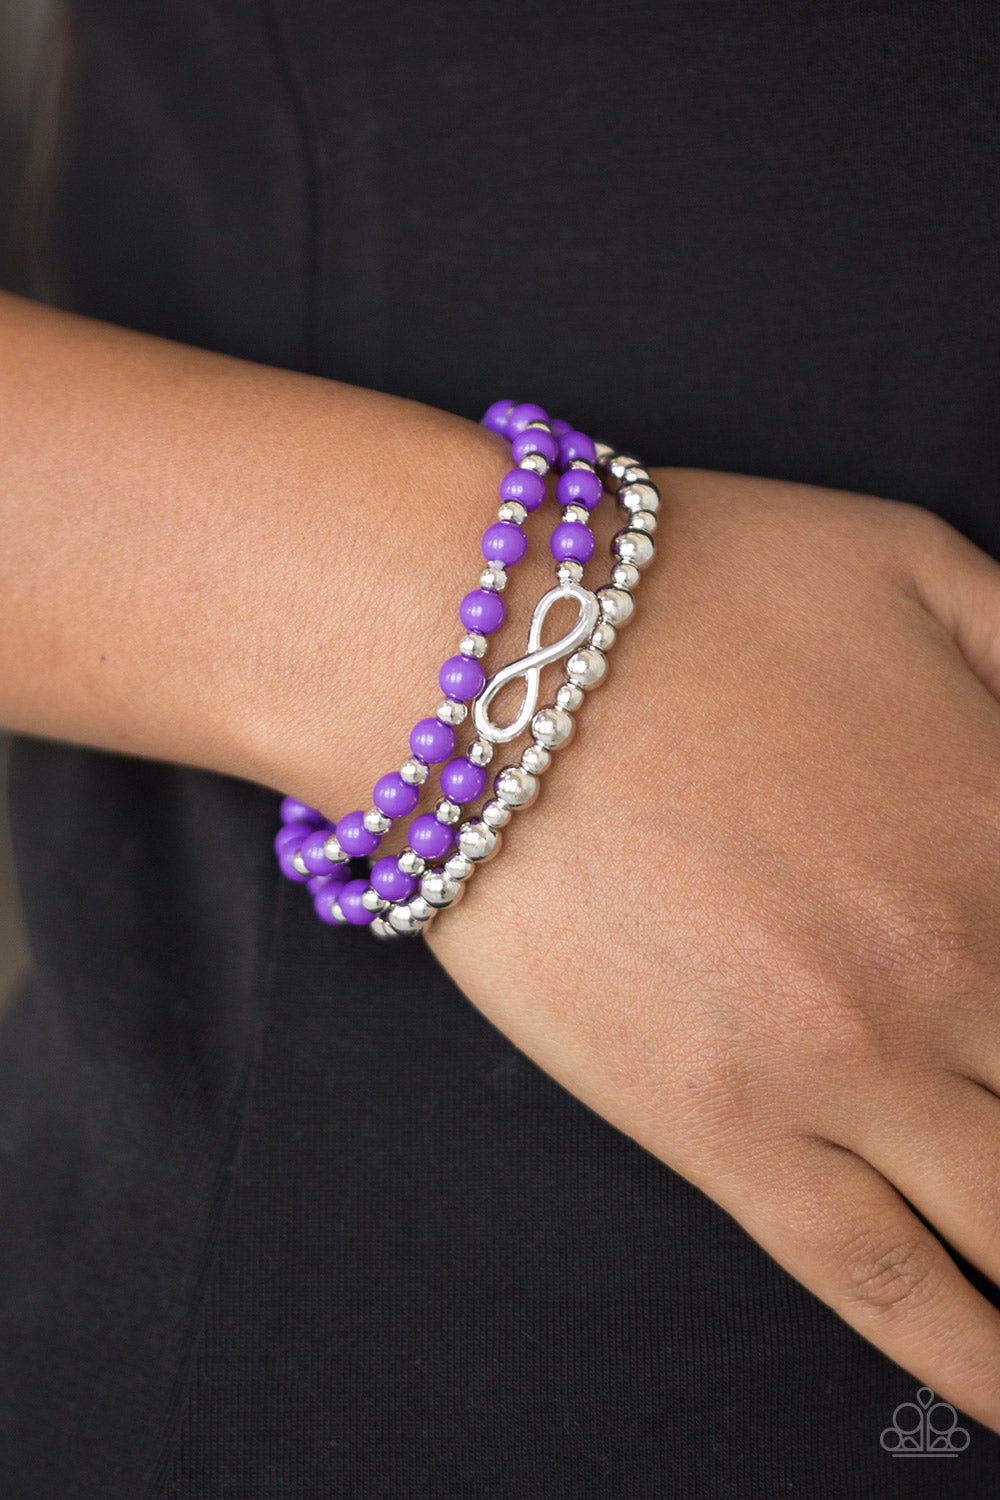 Immeasurably Infinite - Purple Bracelet